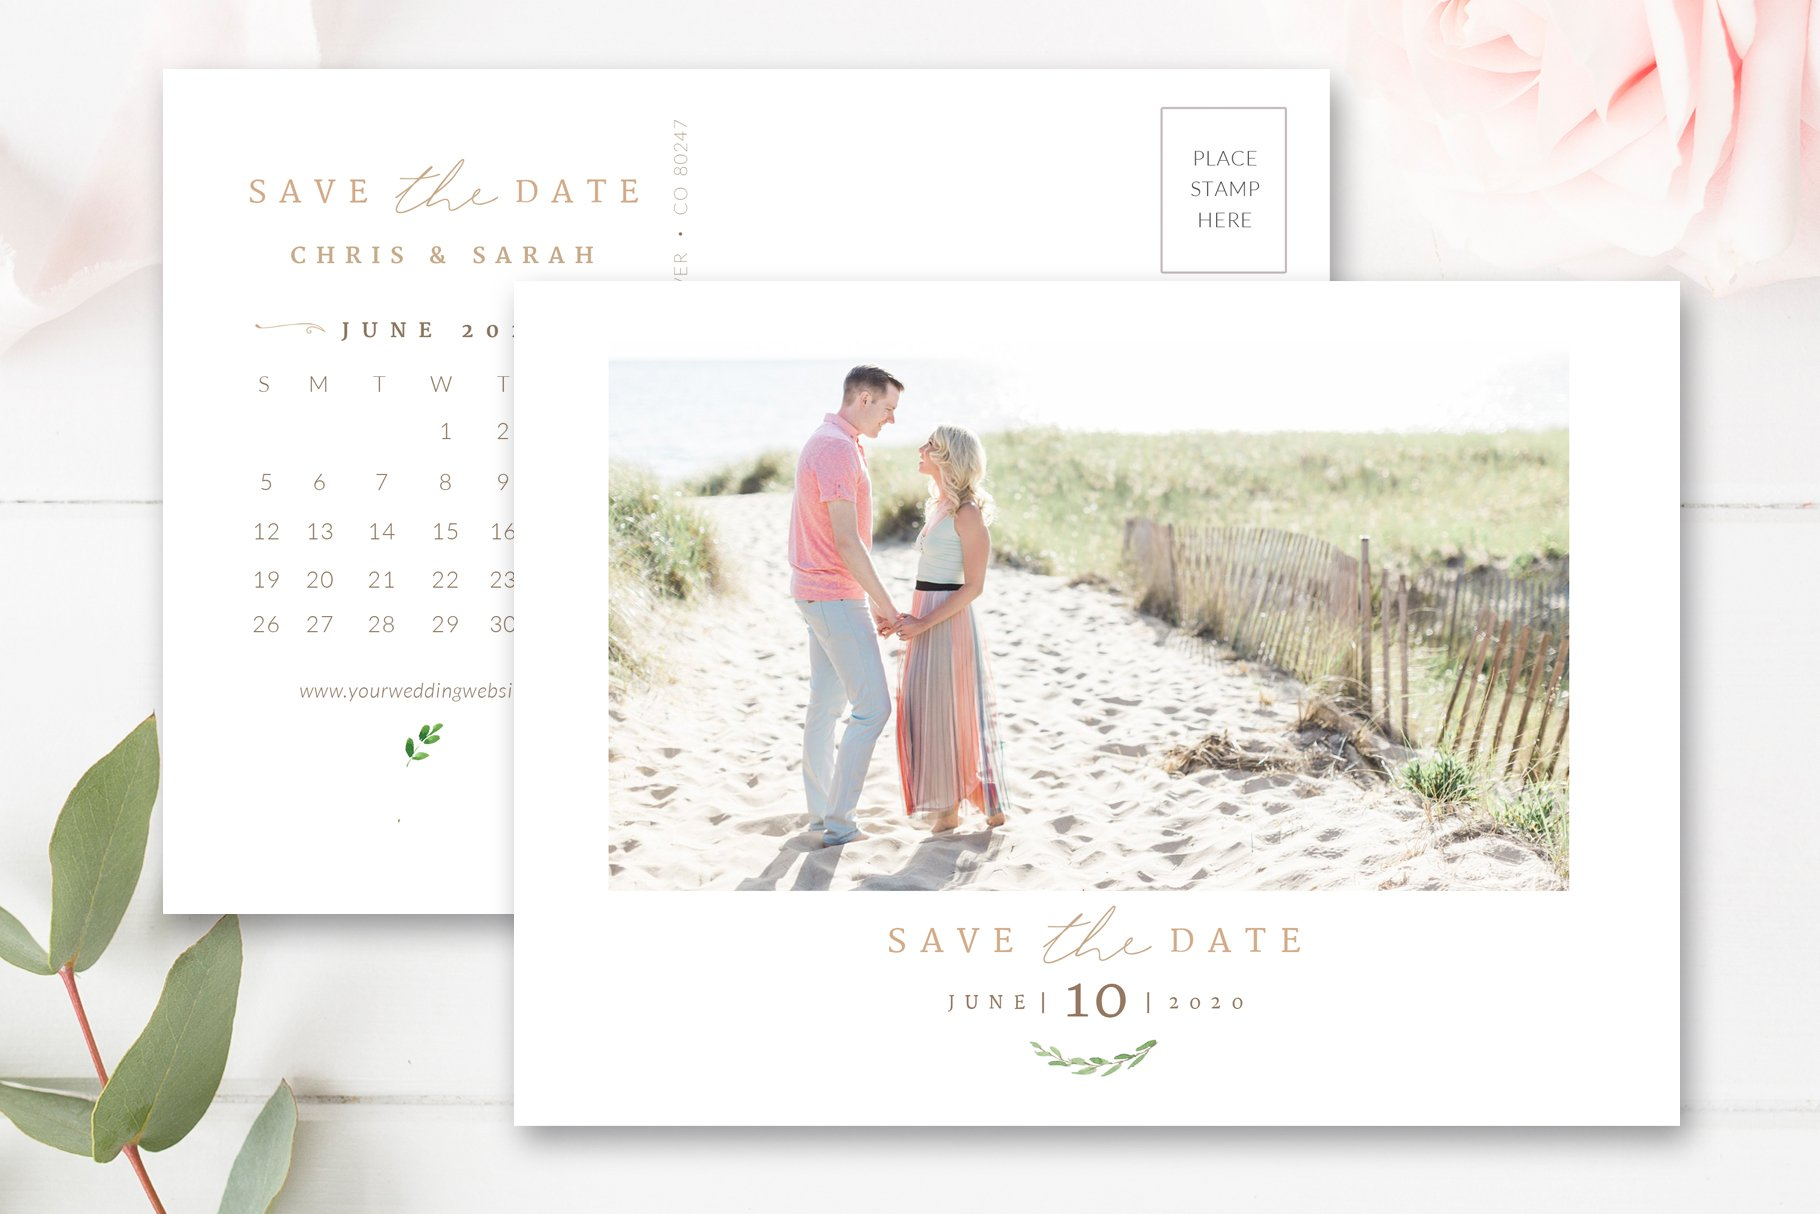 Calendar Save The Date Template Flyer Templates Creative Market - Save the date calendar template